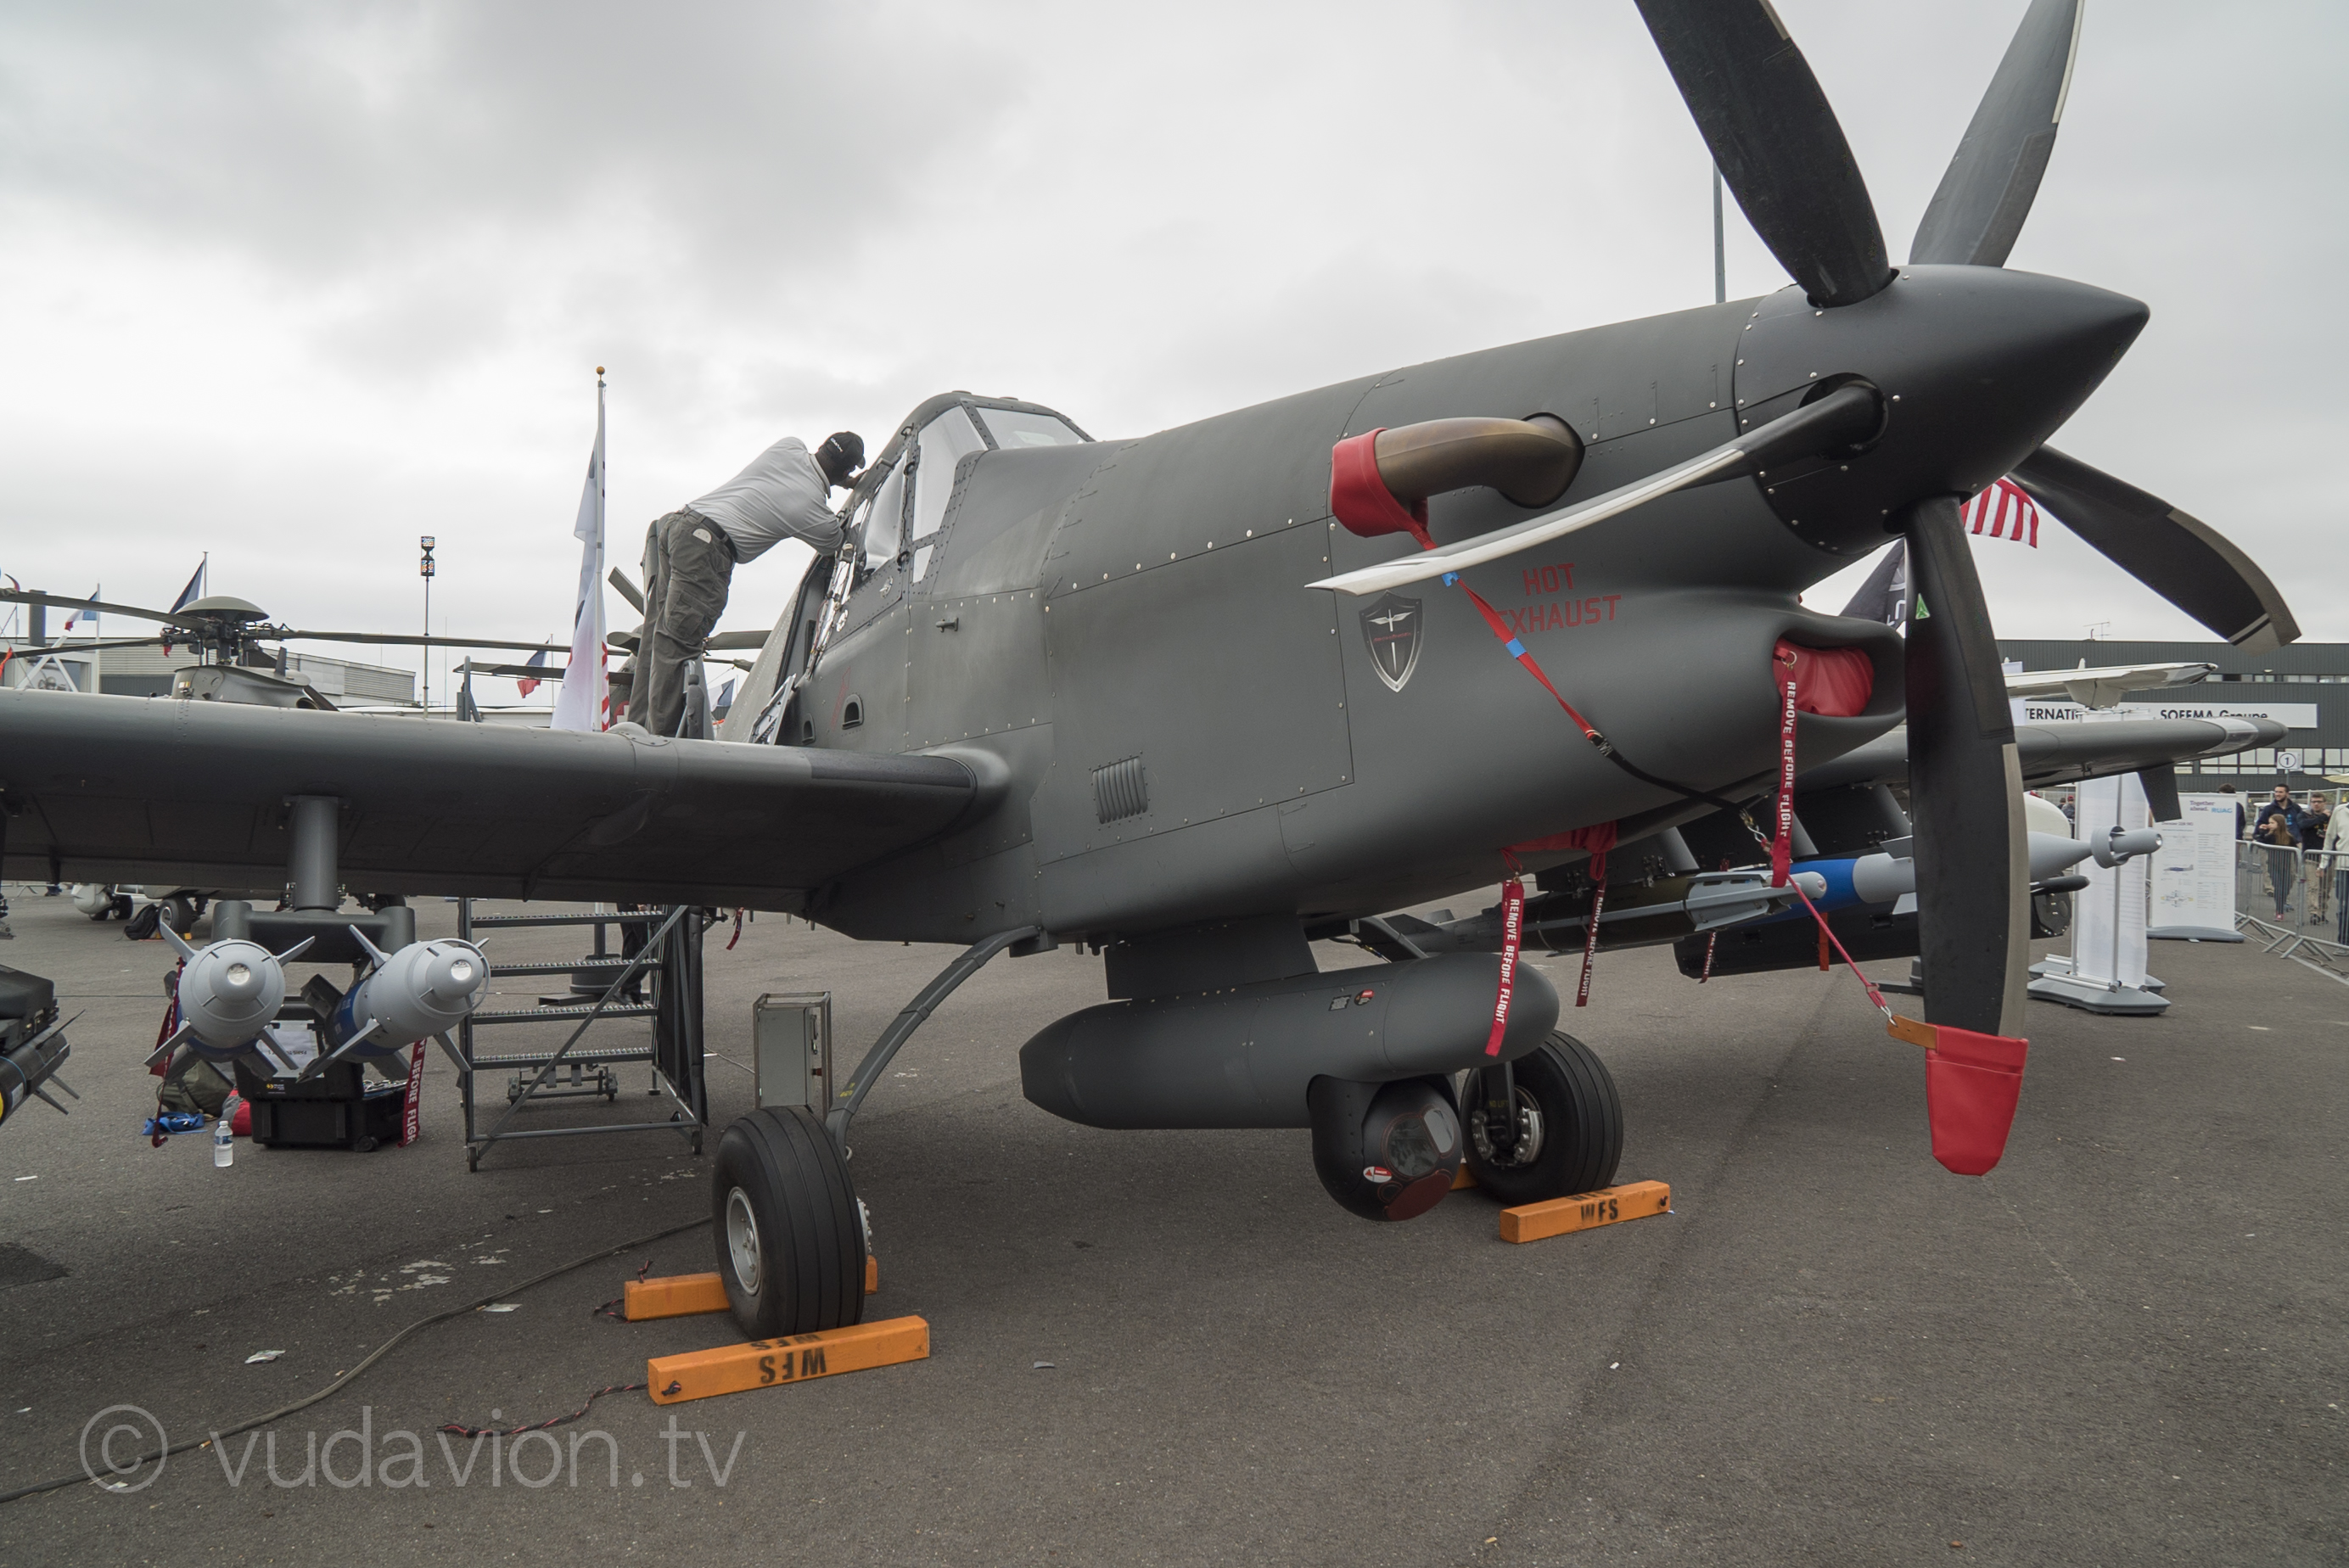 21 juin 2015 salon du bourget vudavion tv for Salon de l aviation le bourget